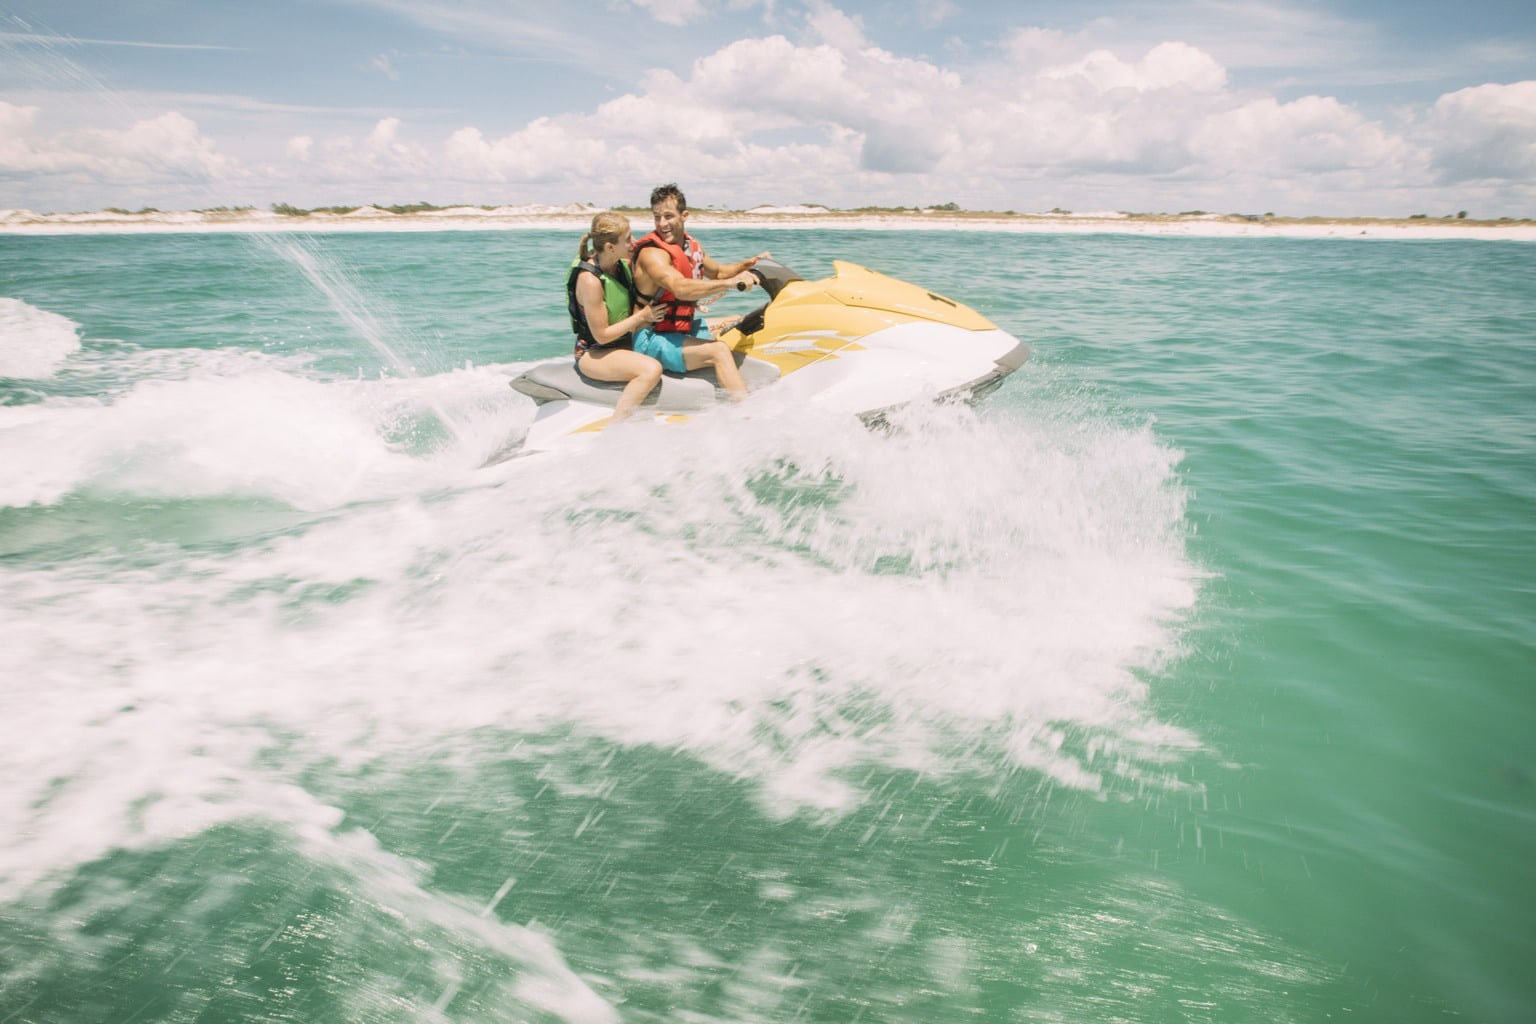 Reunite with Paradise at PCB - water sports at PCB